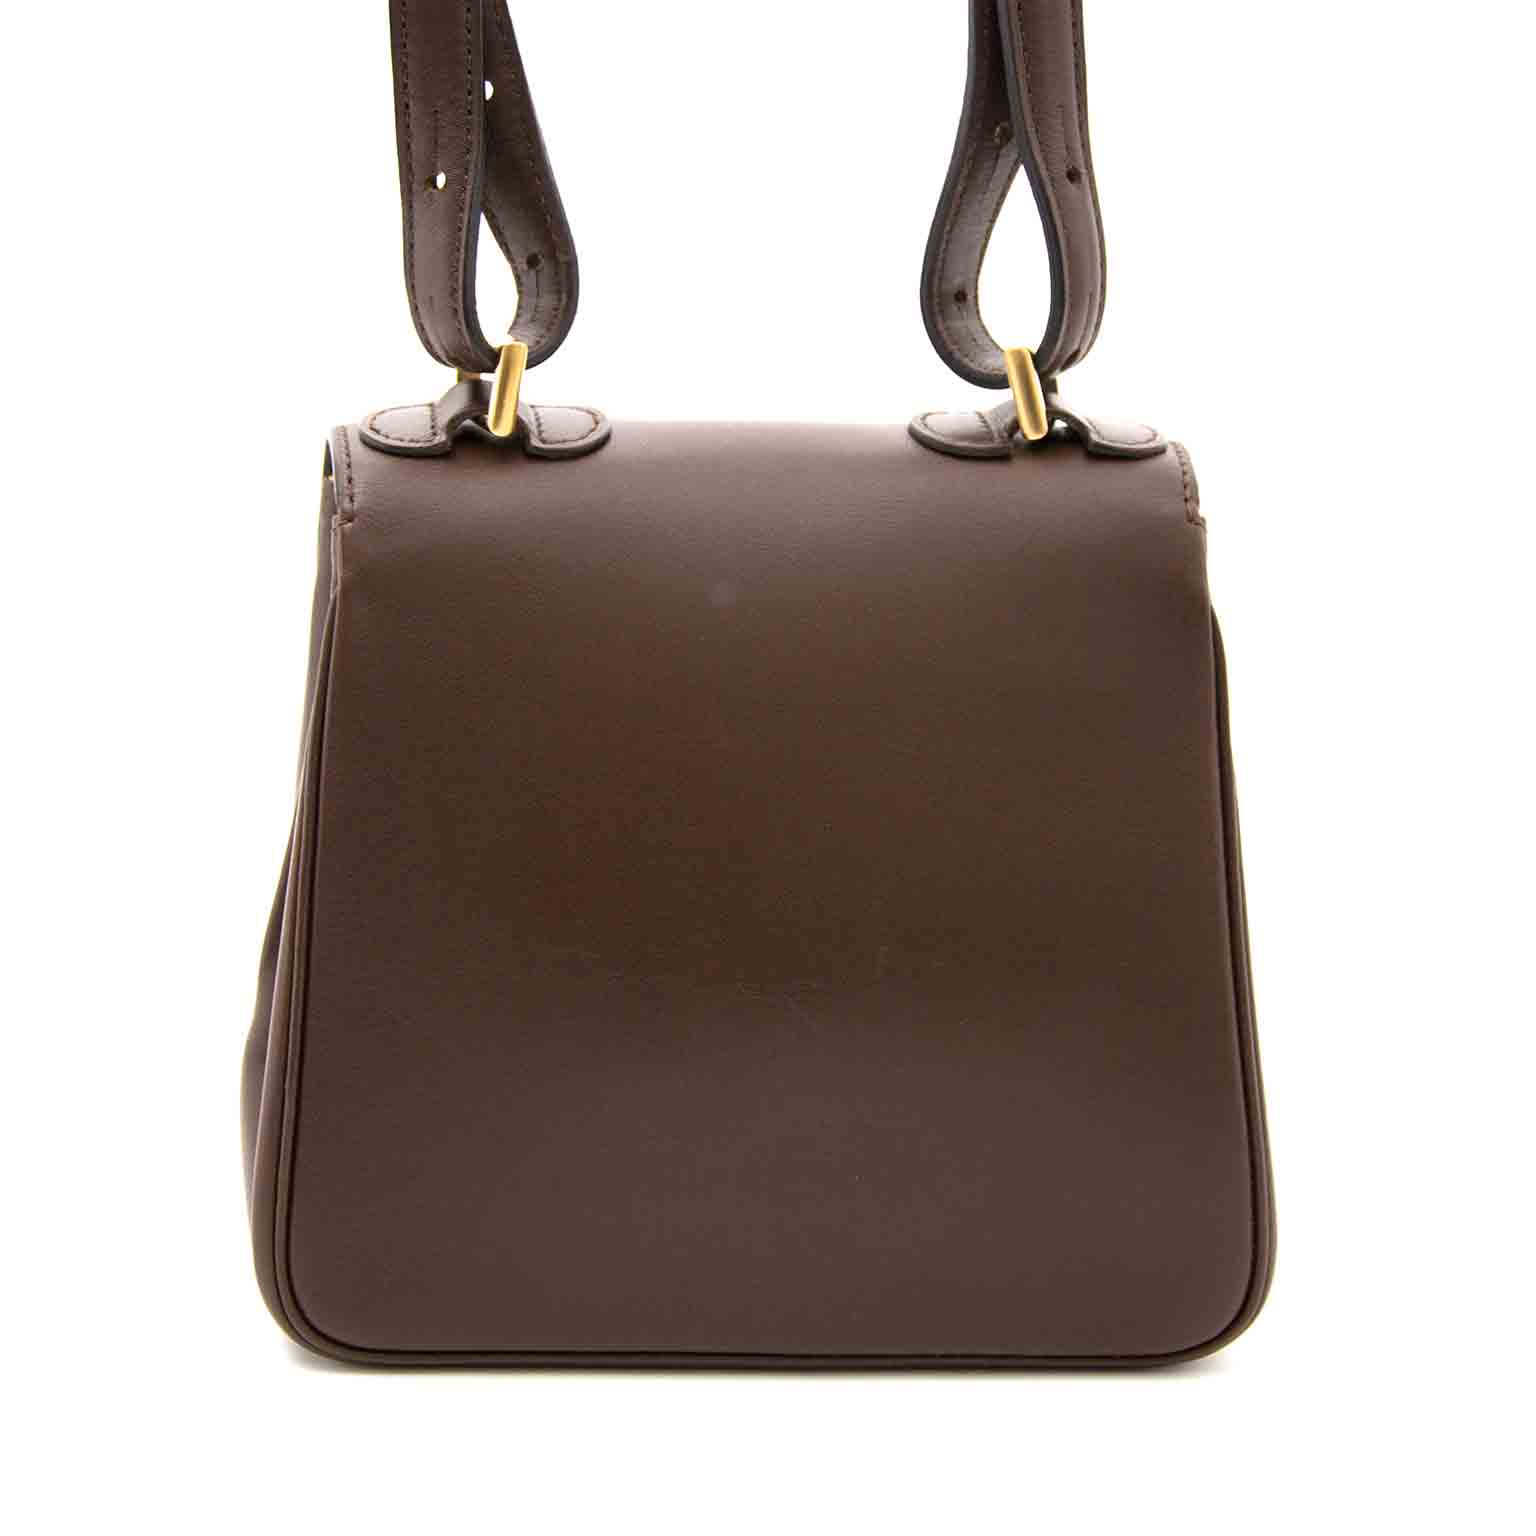 Buy safe and secure online at labellov.com delvaux brillant cross body bag  for the best price